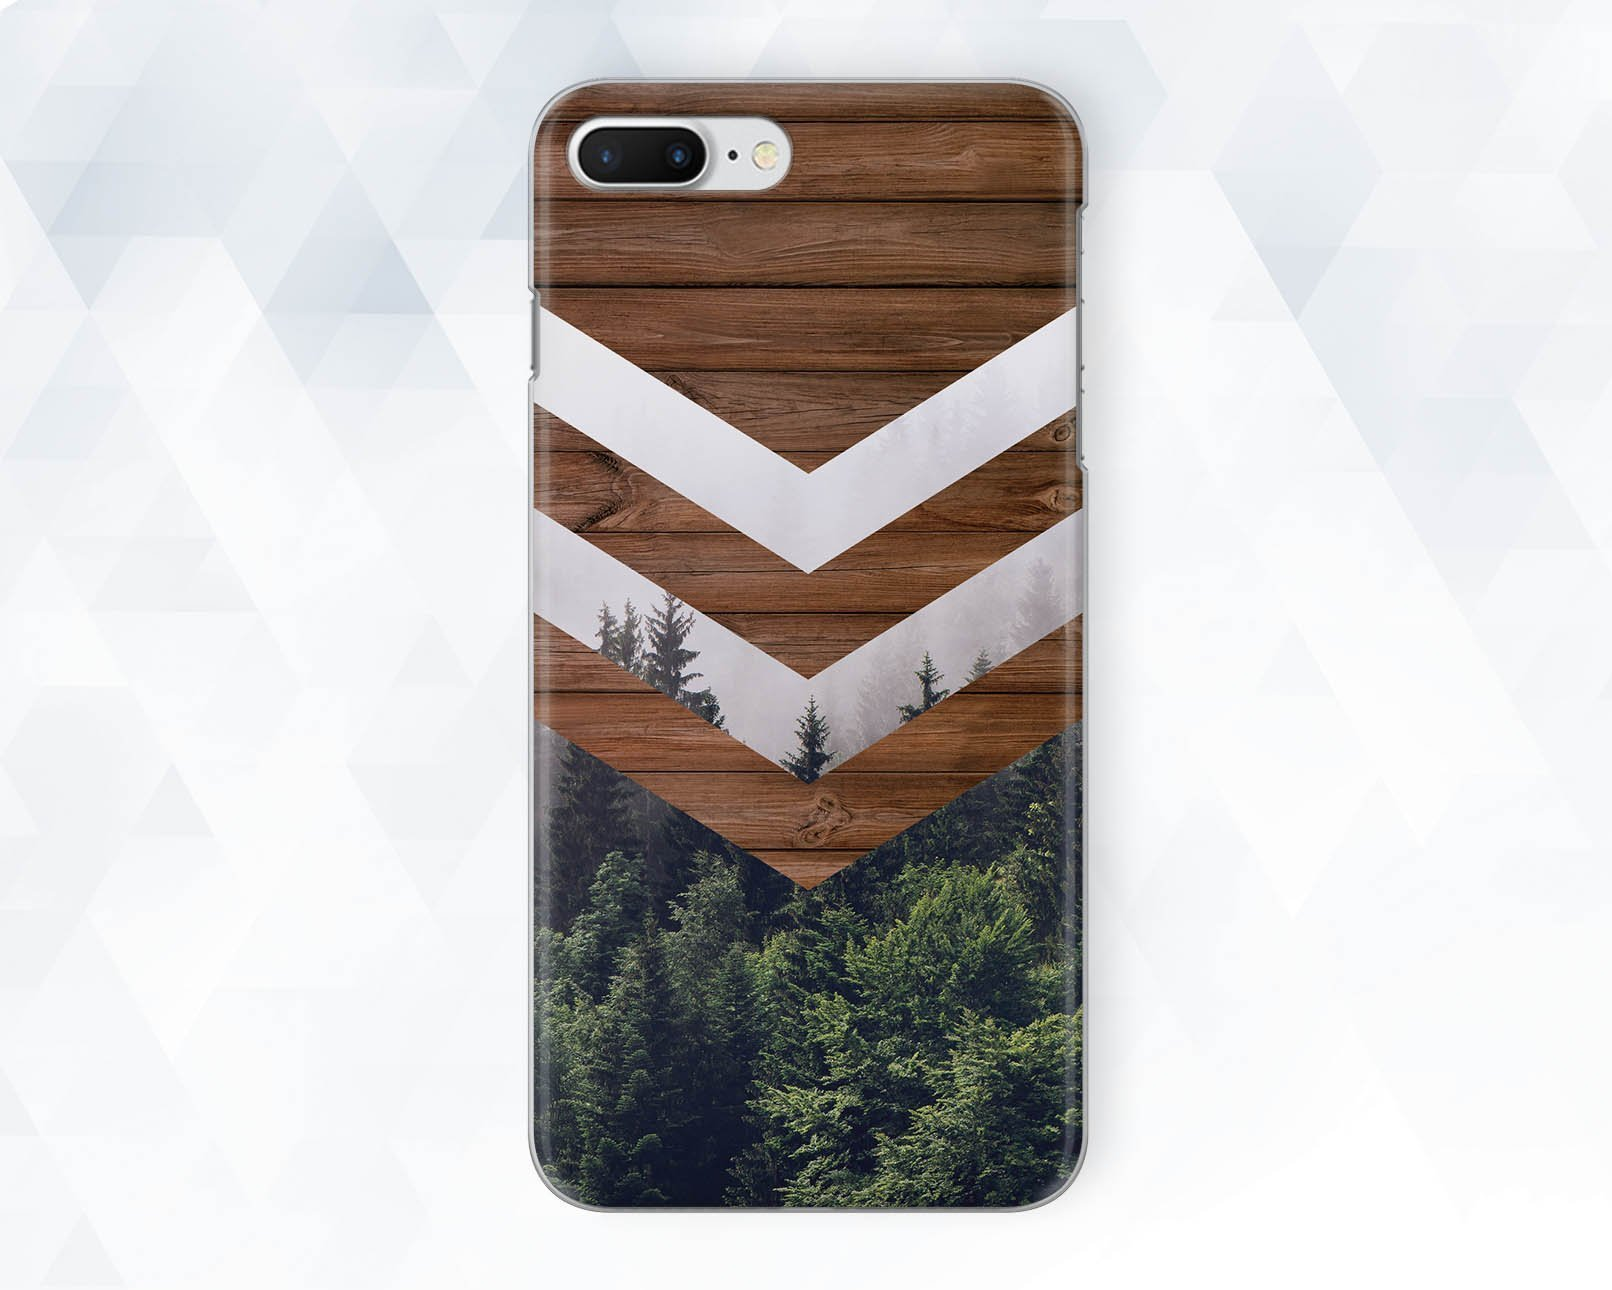 Wood Wooden Forest Nature Phone Case For iPhone 6 6s Plus 7 8 Plus X 10 Case Cover For Samsung Galaxy S6 S7 S8 S9 Plus Note 8 by AlphaCovers